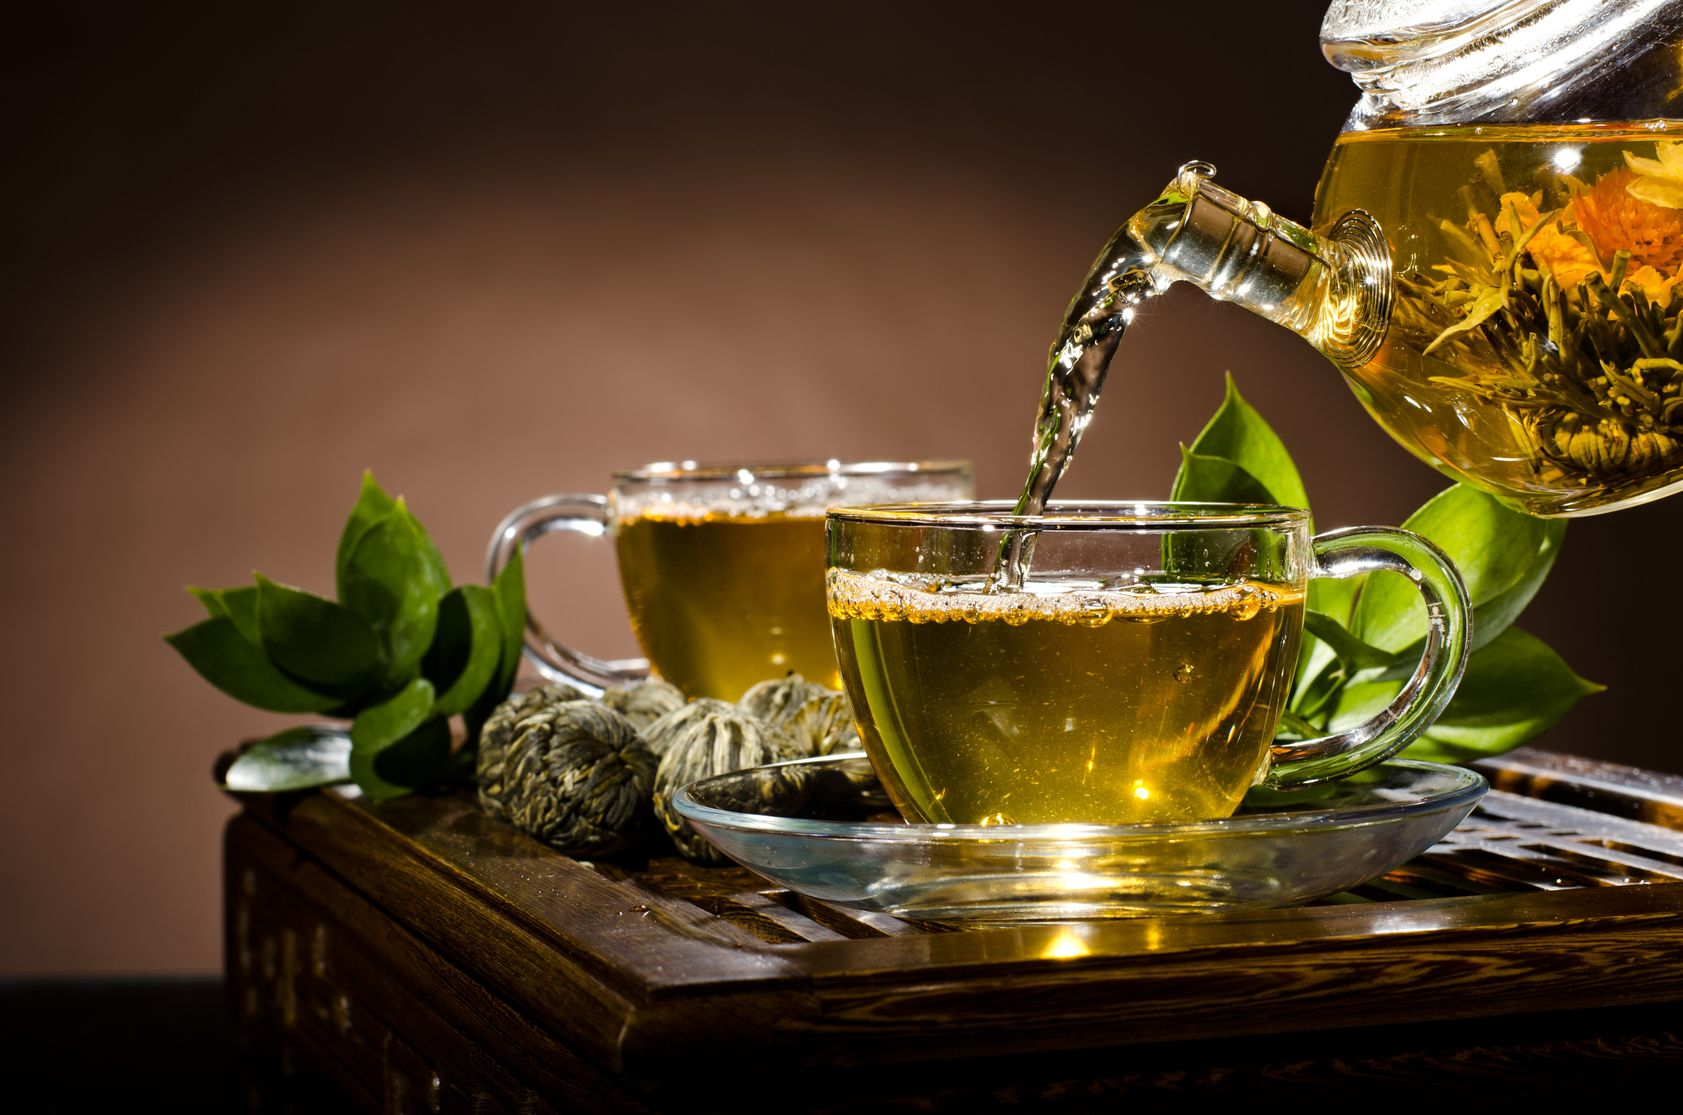 green tea reduces risk of death after heart attack or stroke